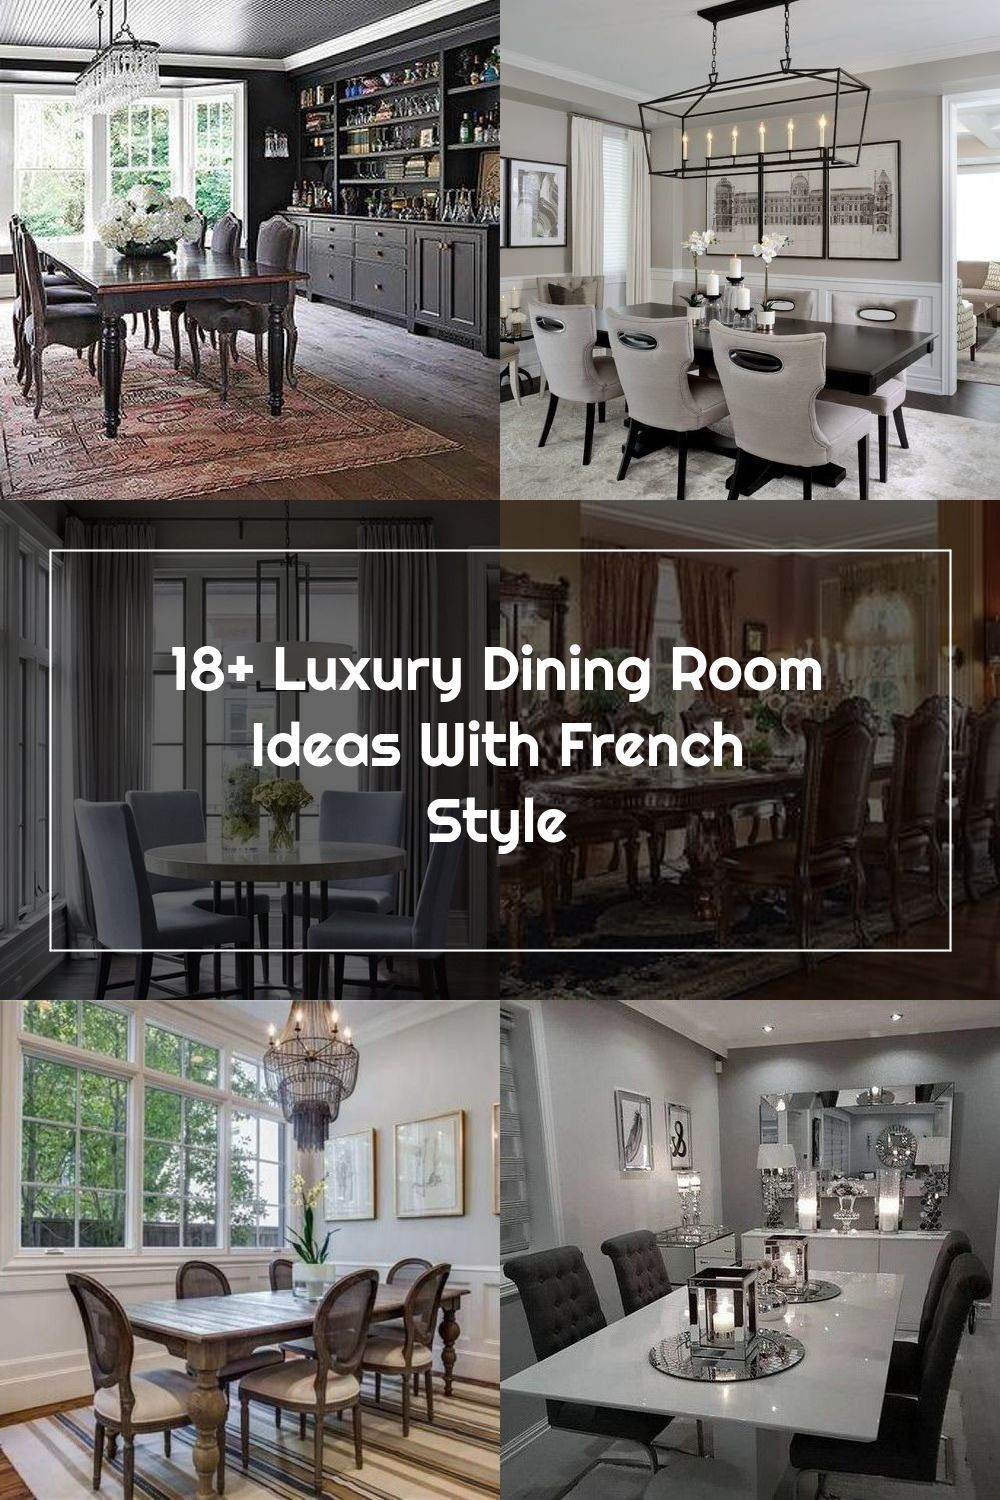 18+ Luxury Dining Room Ideas With French Style #diningroomdecorating #diningroomdecor #diningroomfurniture